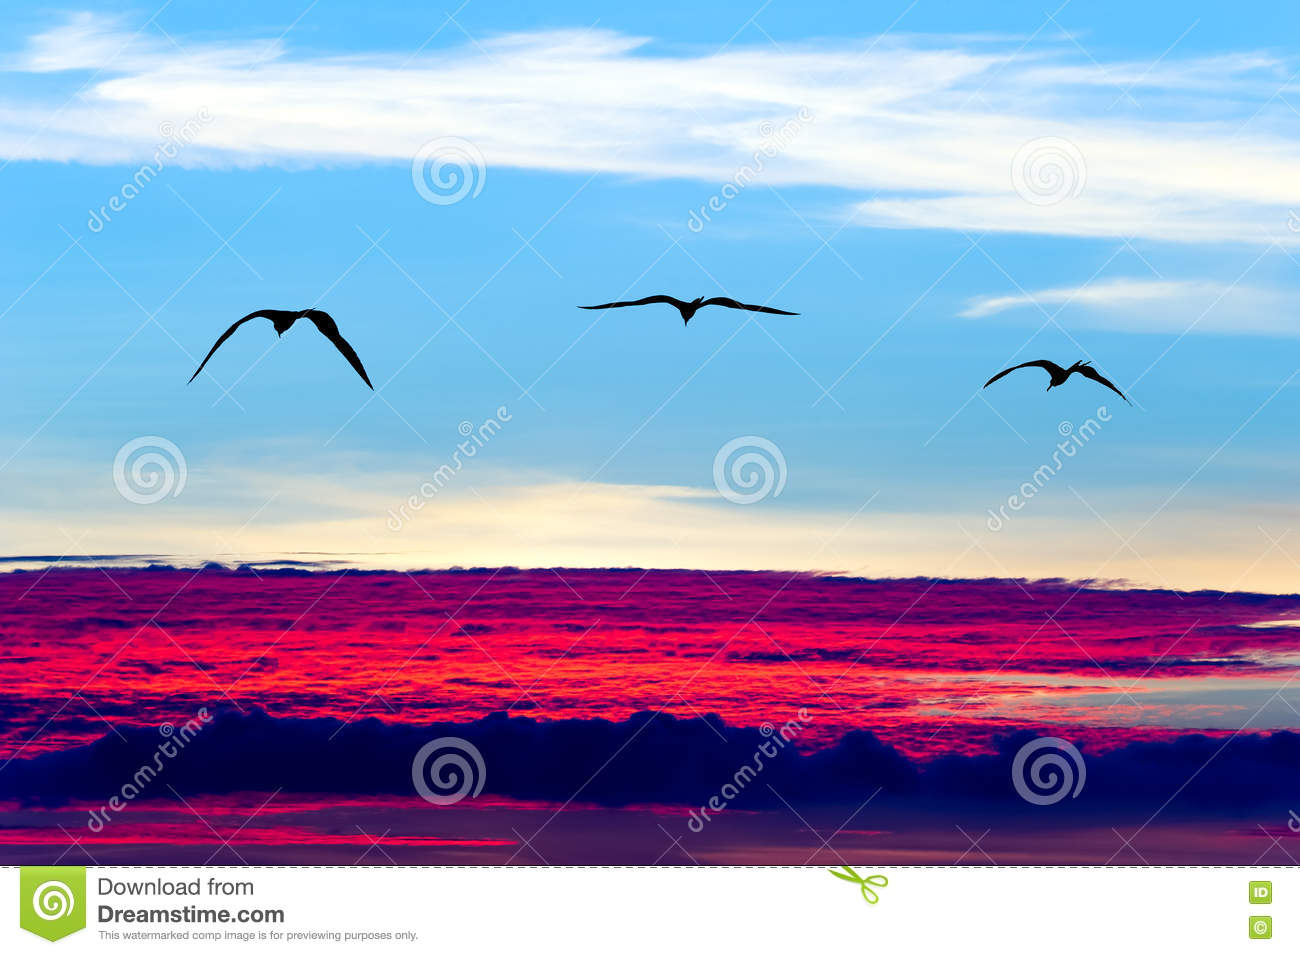 Flying Birds Free Stock Photos Download 3 416 Free Stock: Birds Flying Silhouettes Stock Images